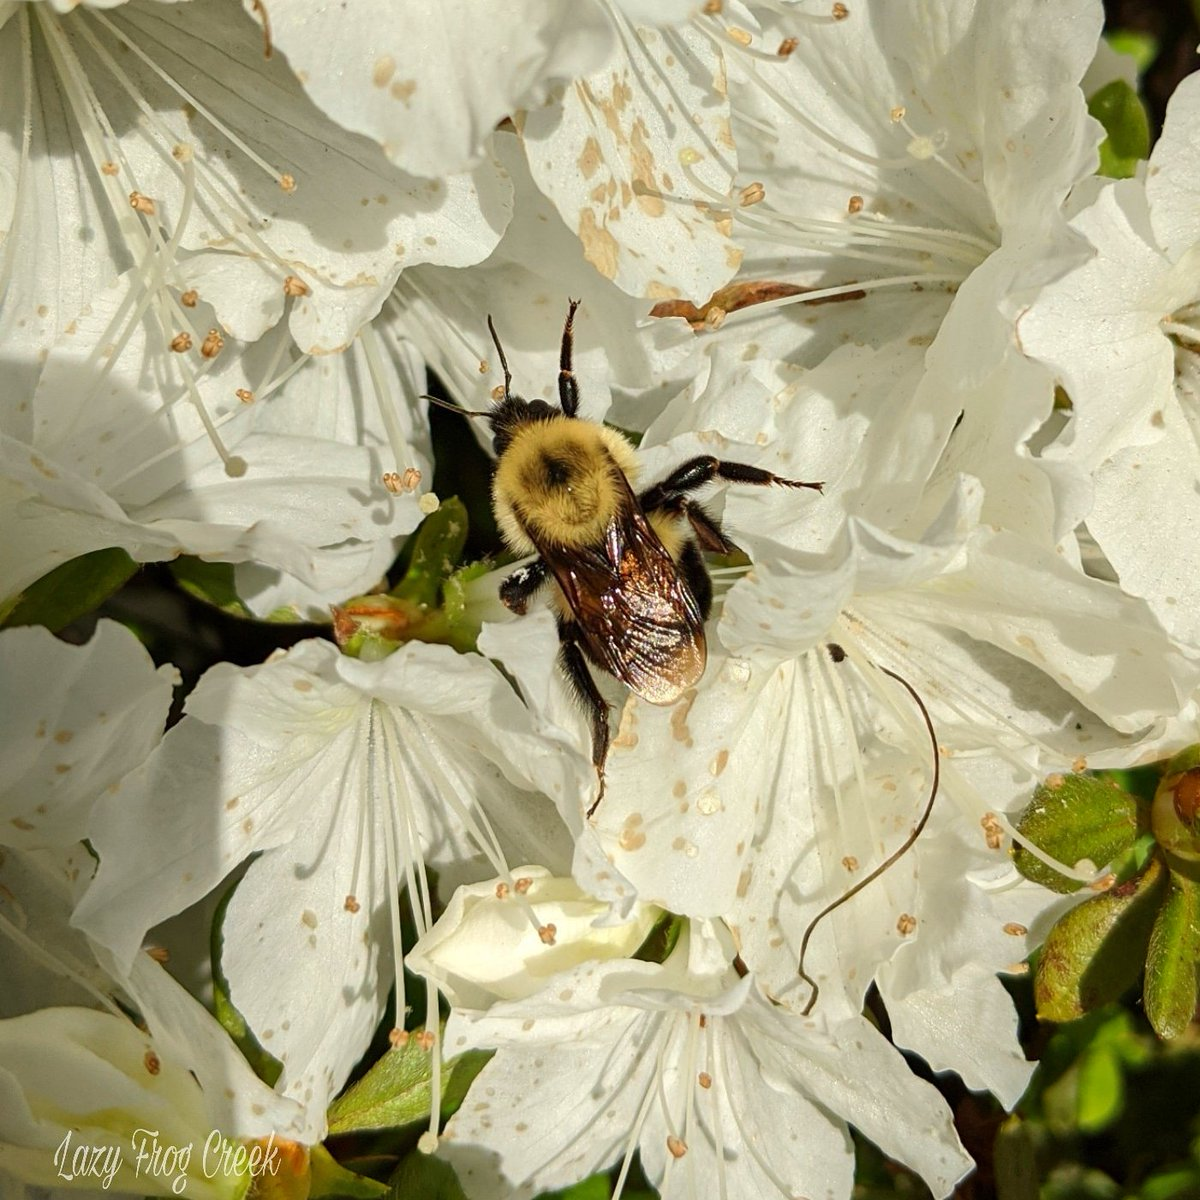 #savethebees #WorldBeeDay #bee #nature #flowers #pollinators #WildlifeWednesday #animals #azalea #NewJerseypic.twitter.com/fDv0d0cFvq